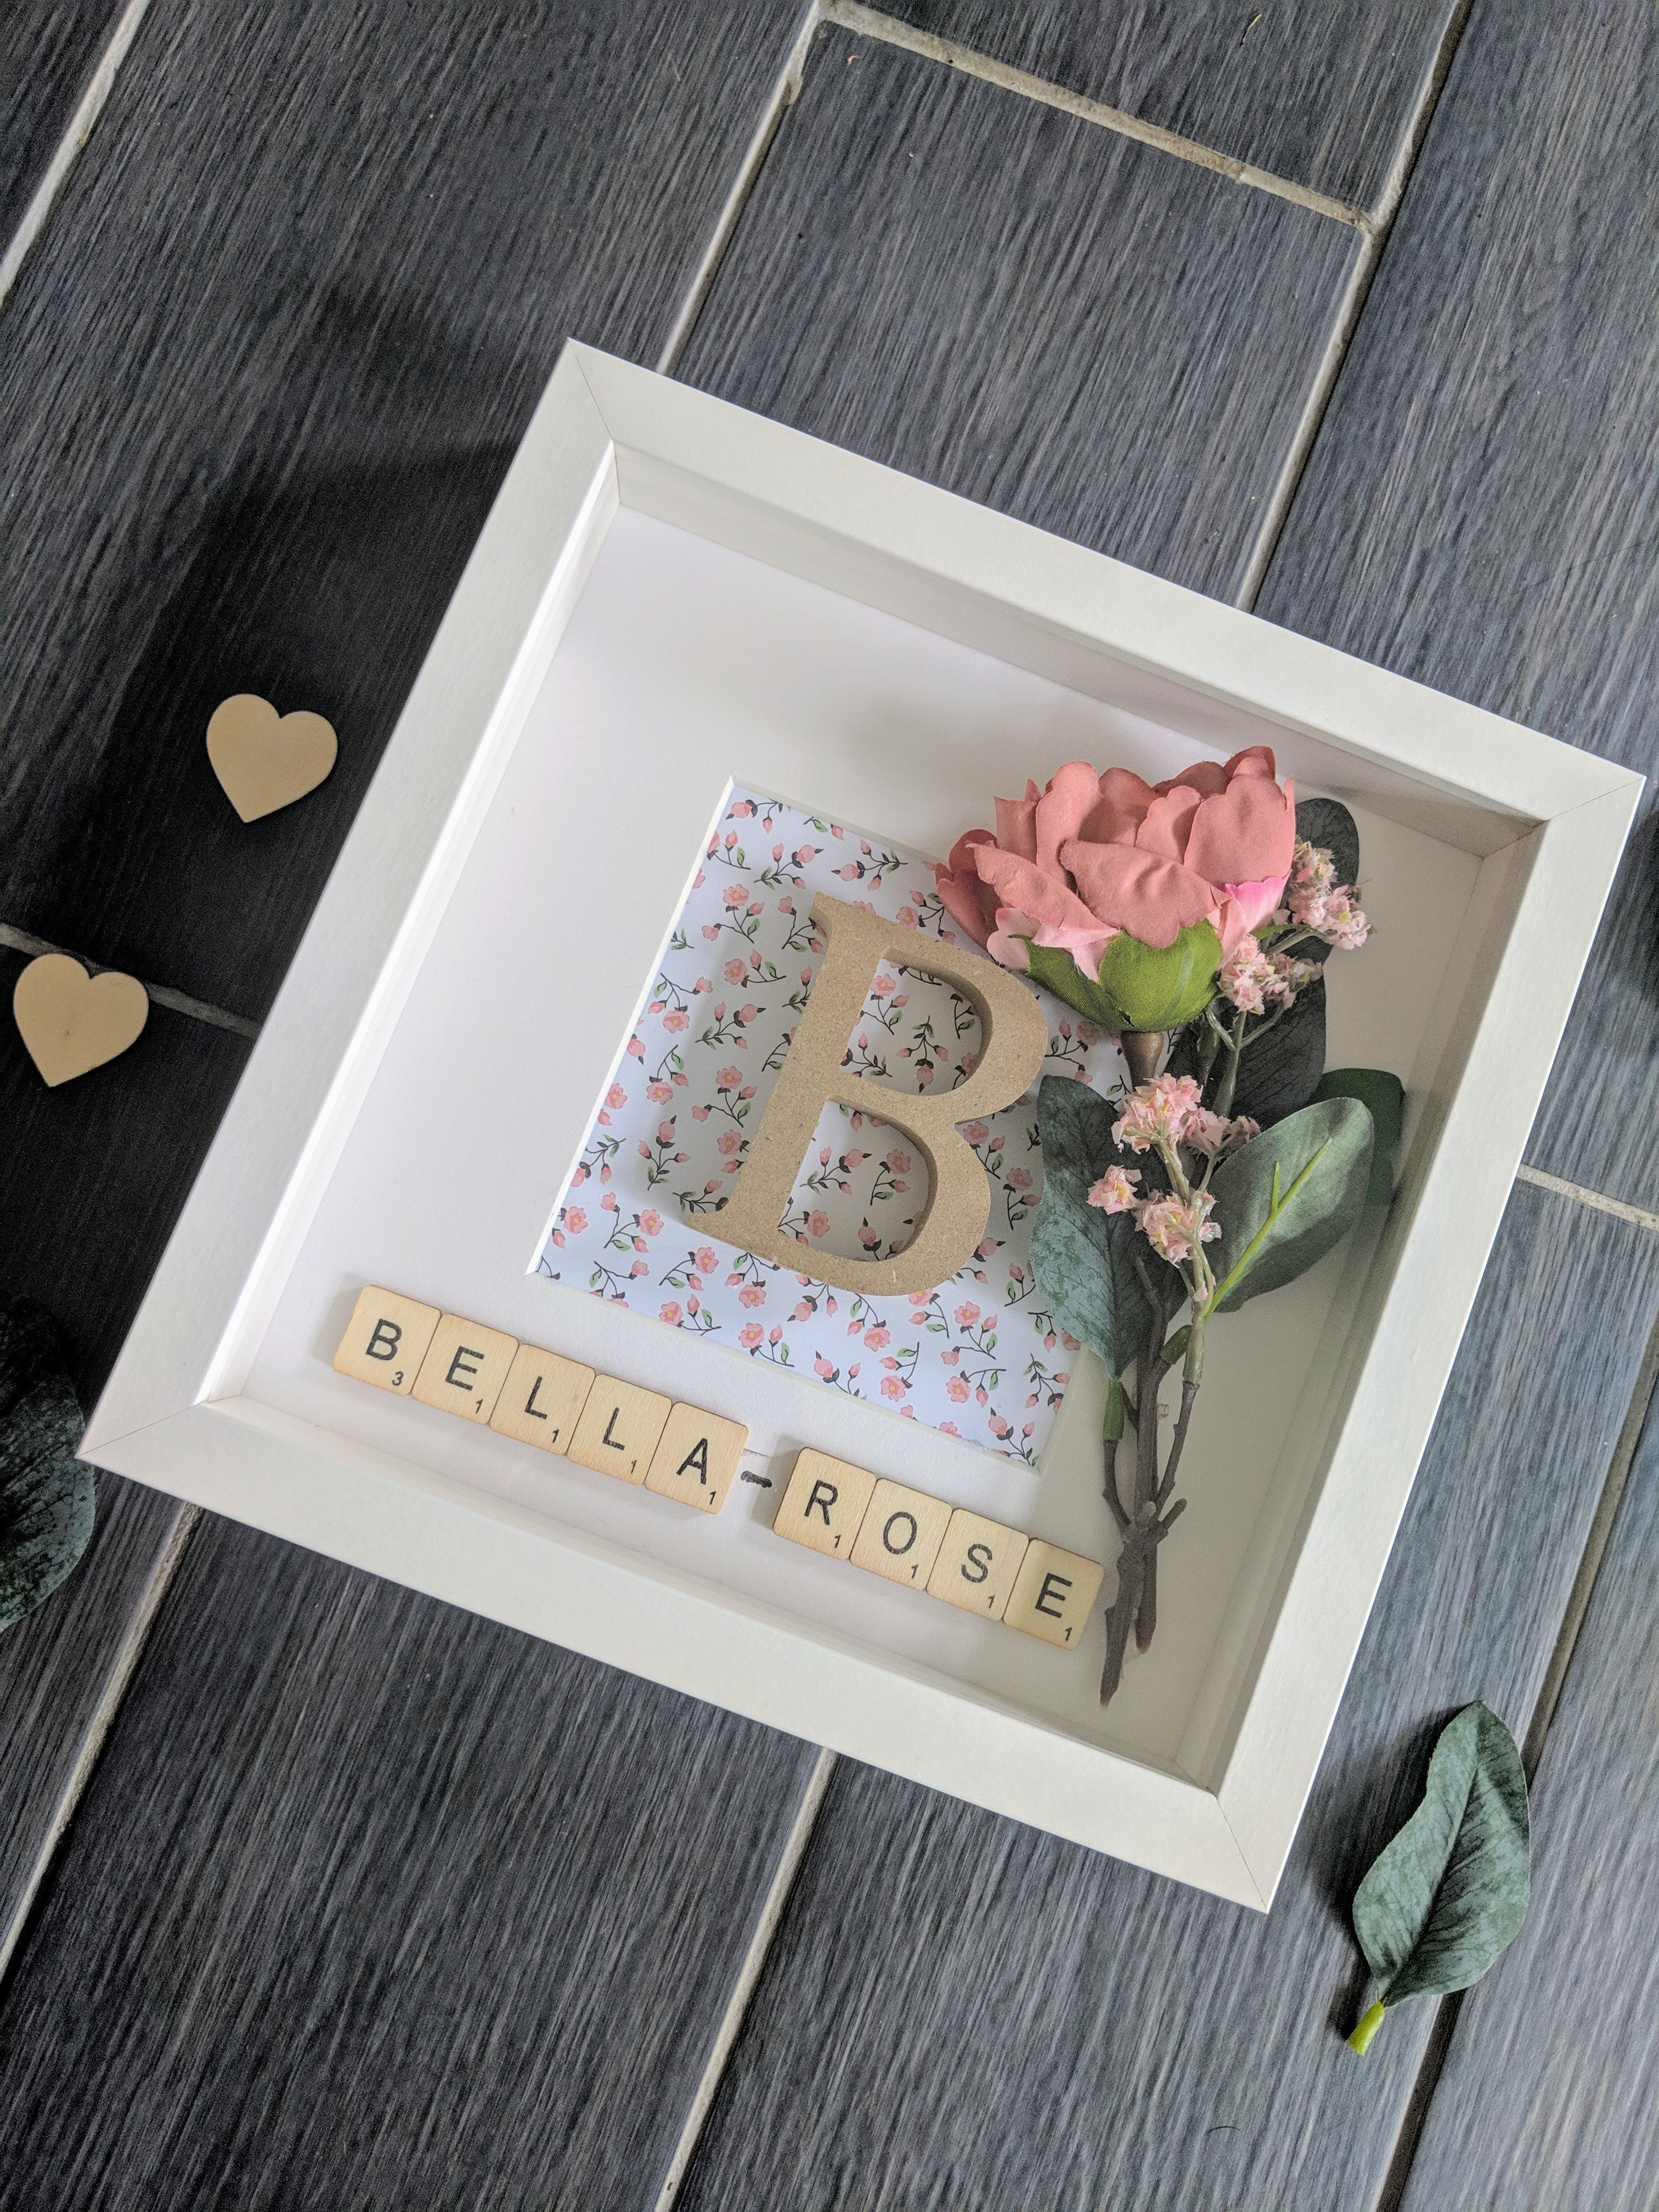 Wooden Initial, floral detail, frame decor. Handcrafted and personalised with scrabble tiles